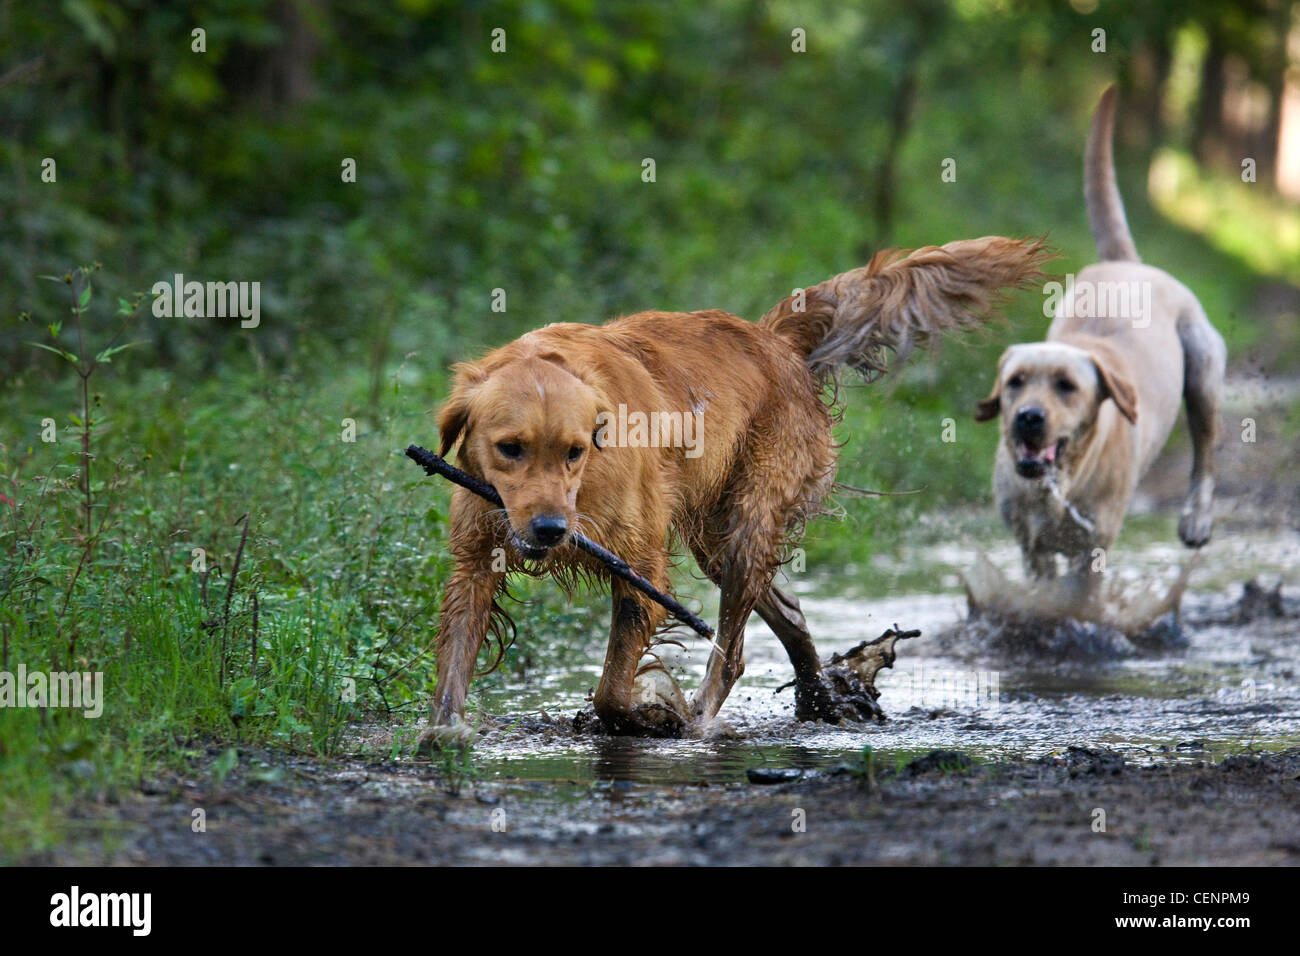 Golden retriever and labrador dogs playing and running with stick through muddy puddle on path in forest, Belgium - Stock Image